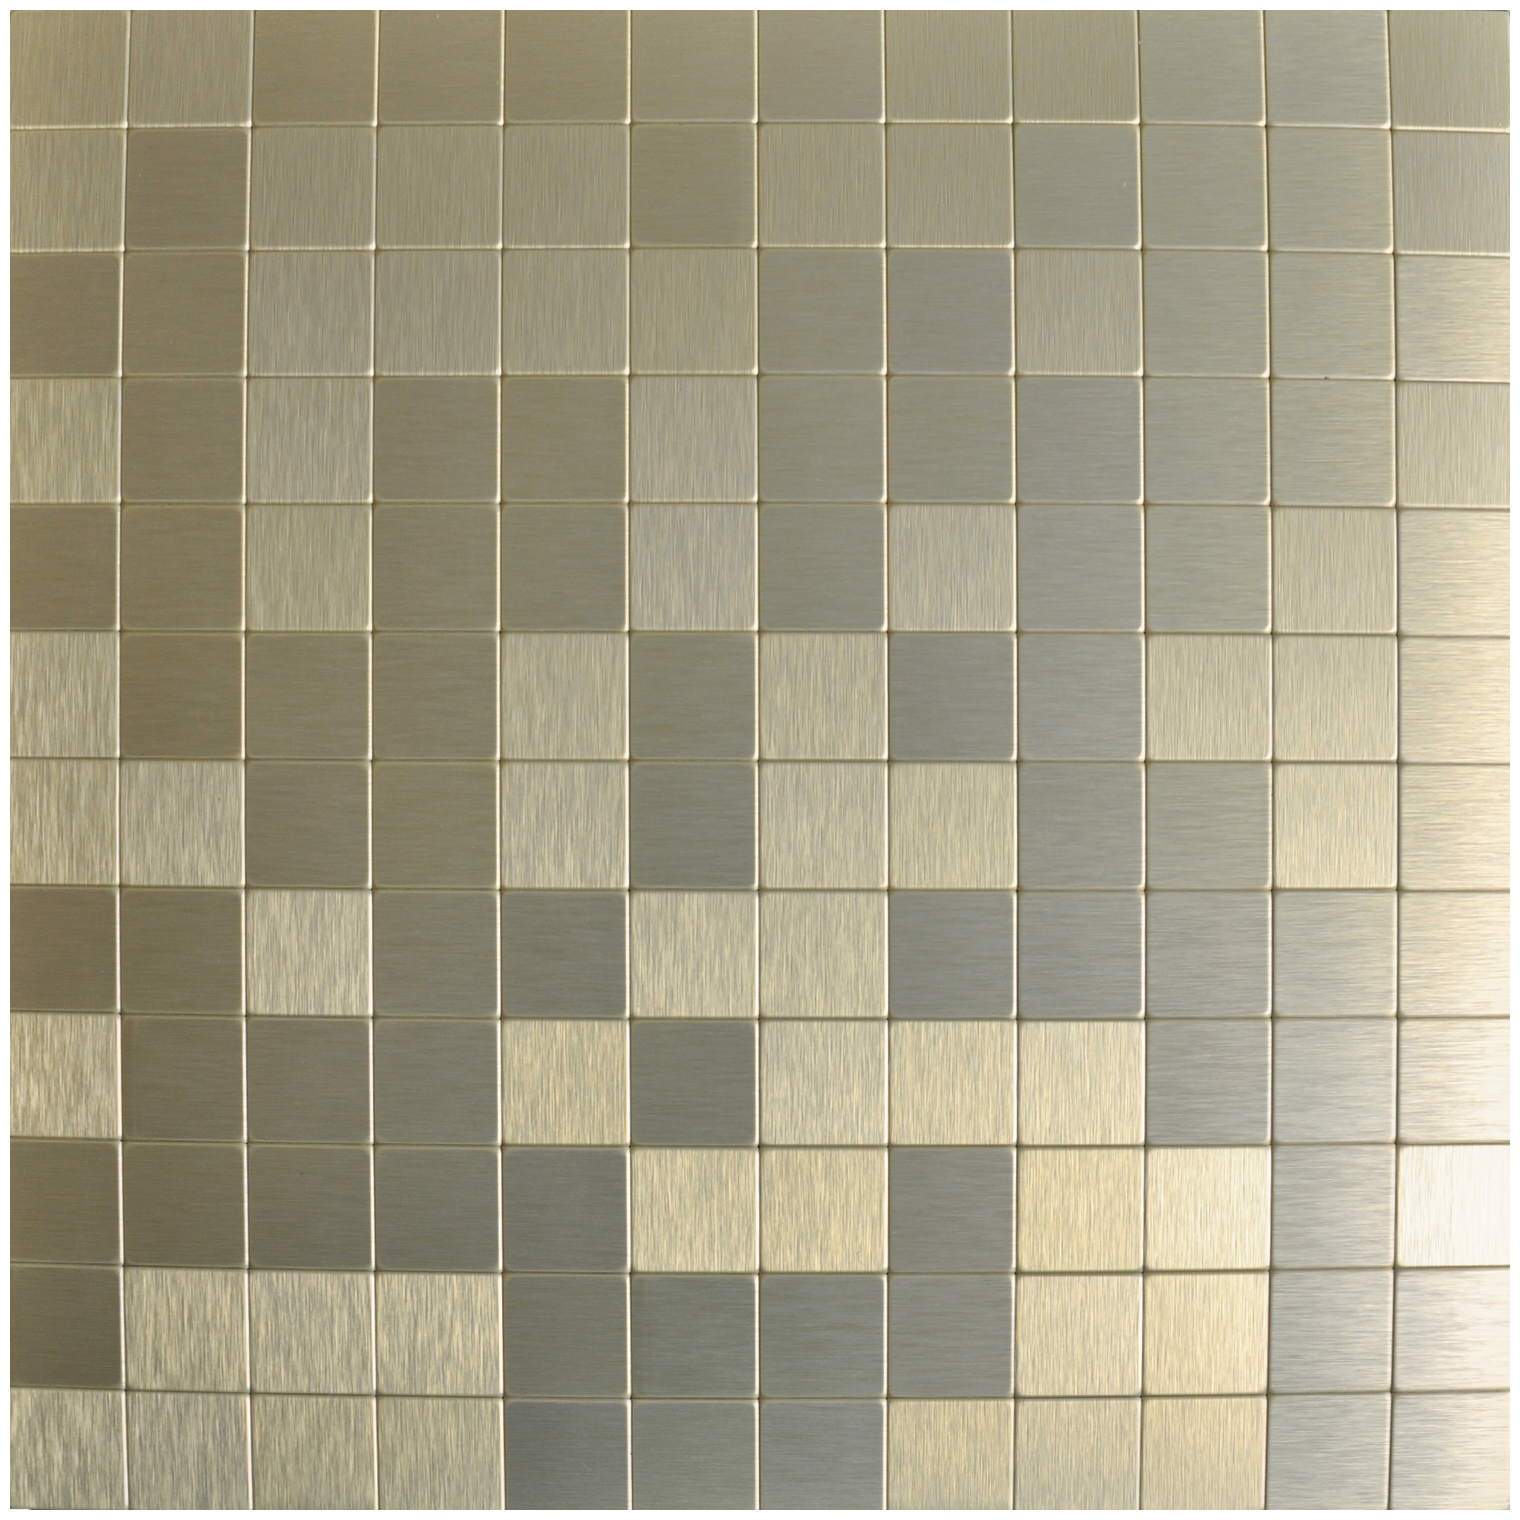 a16012 peel n stick metal mosaic 10 sheets bronze square tiles 12x12in - Metal Tile Home 2016